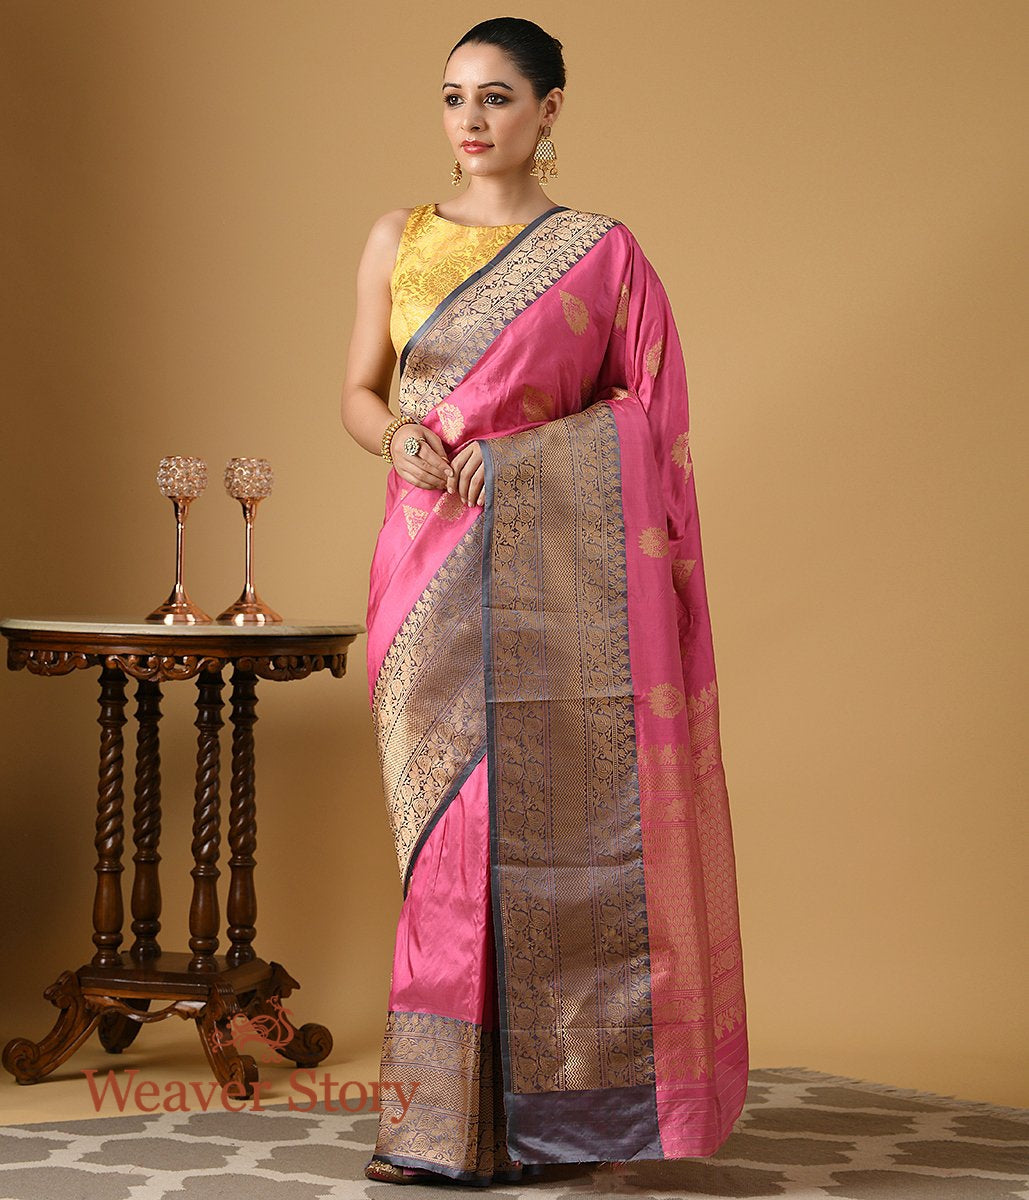 Handwoven Pink Katan  Silk Saree with Gold Zari Boota and Contrast Grey Border